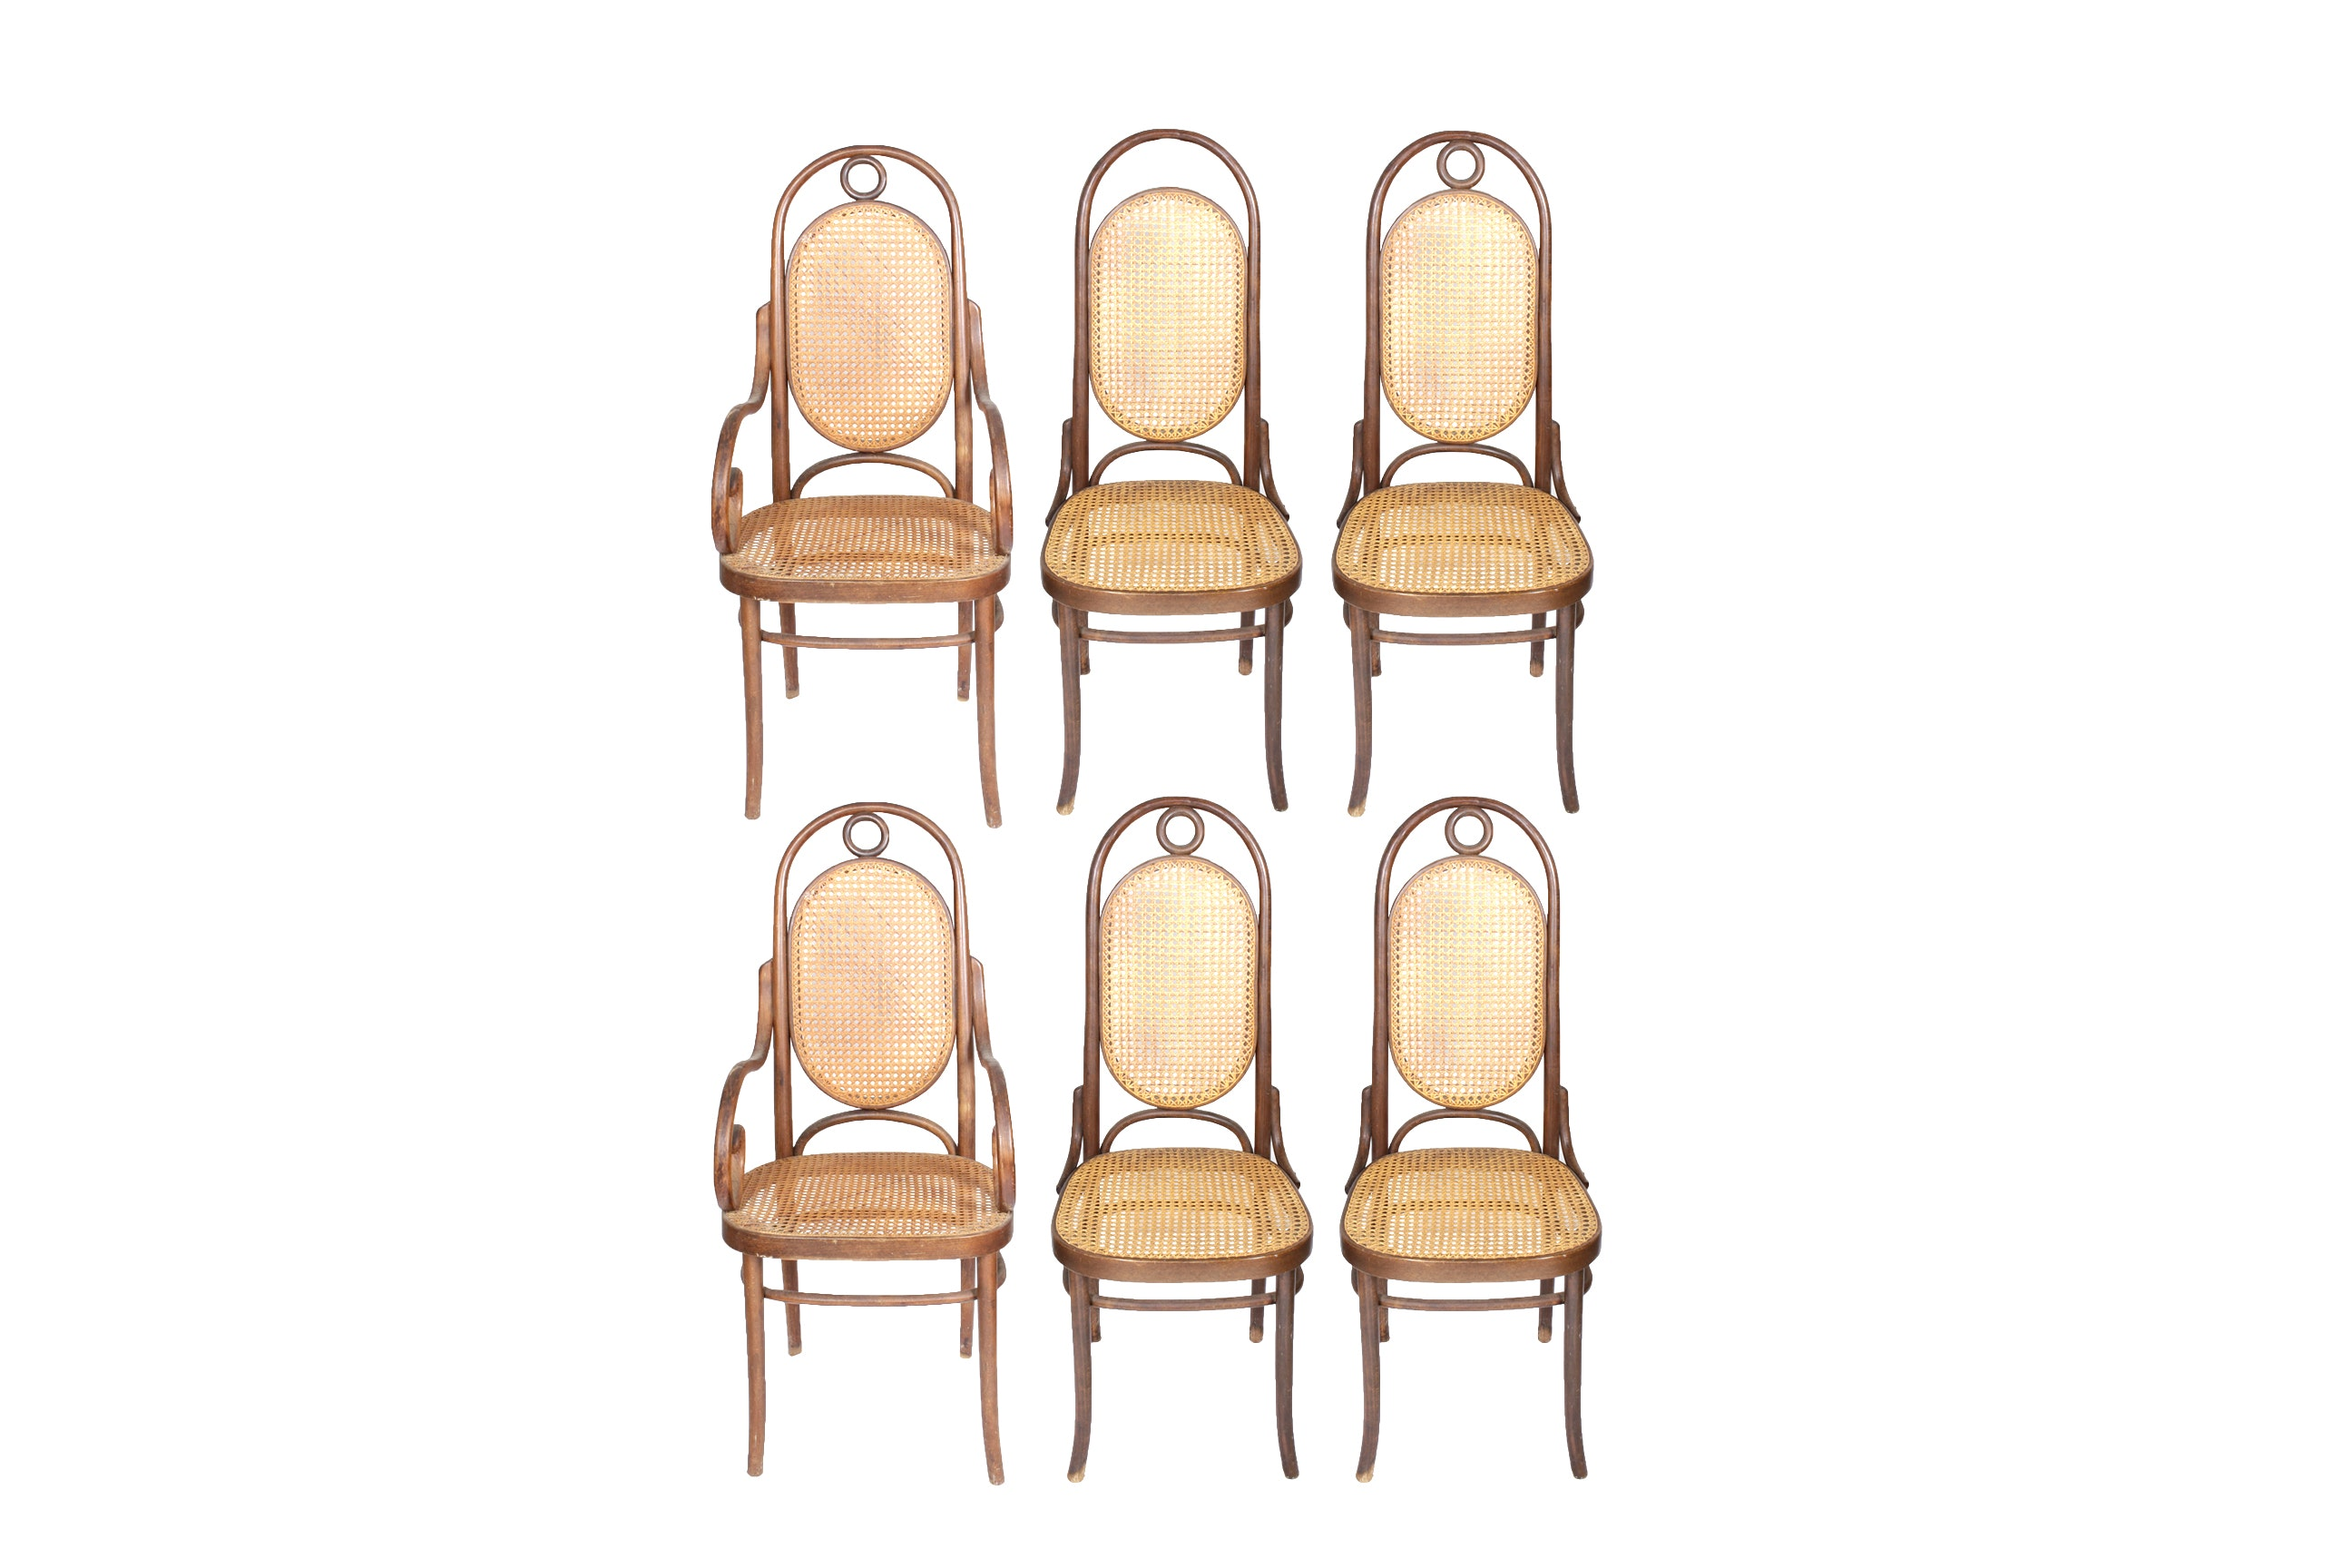 Set of Thonet Style Bentwood and Cane Dining Chairs